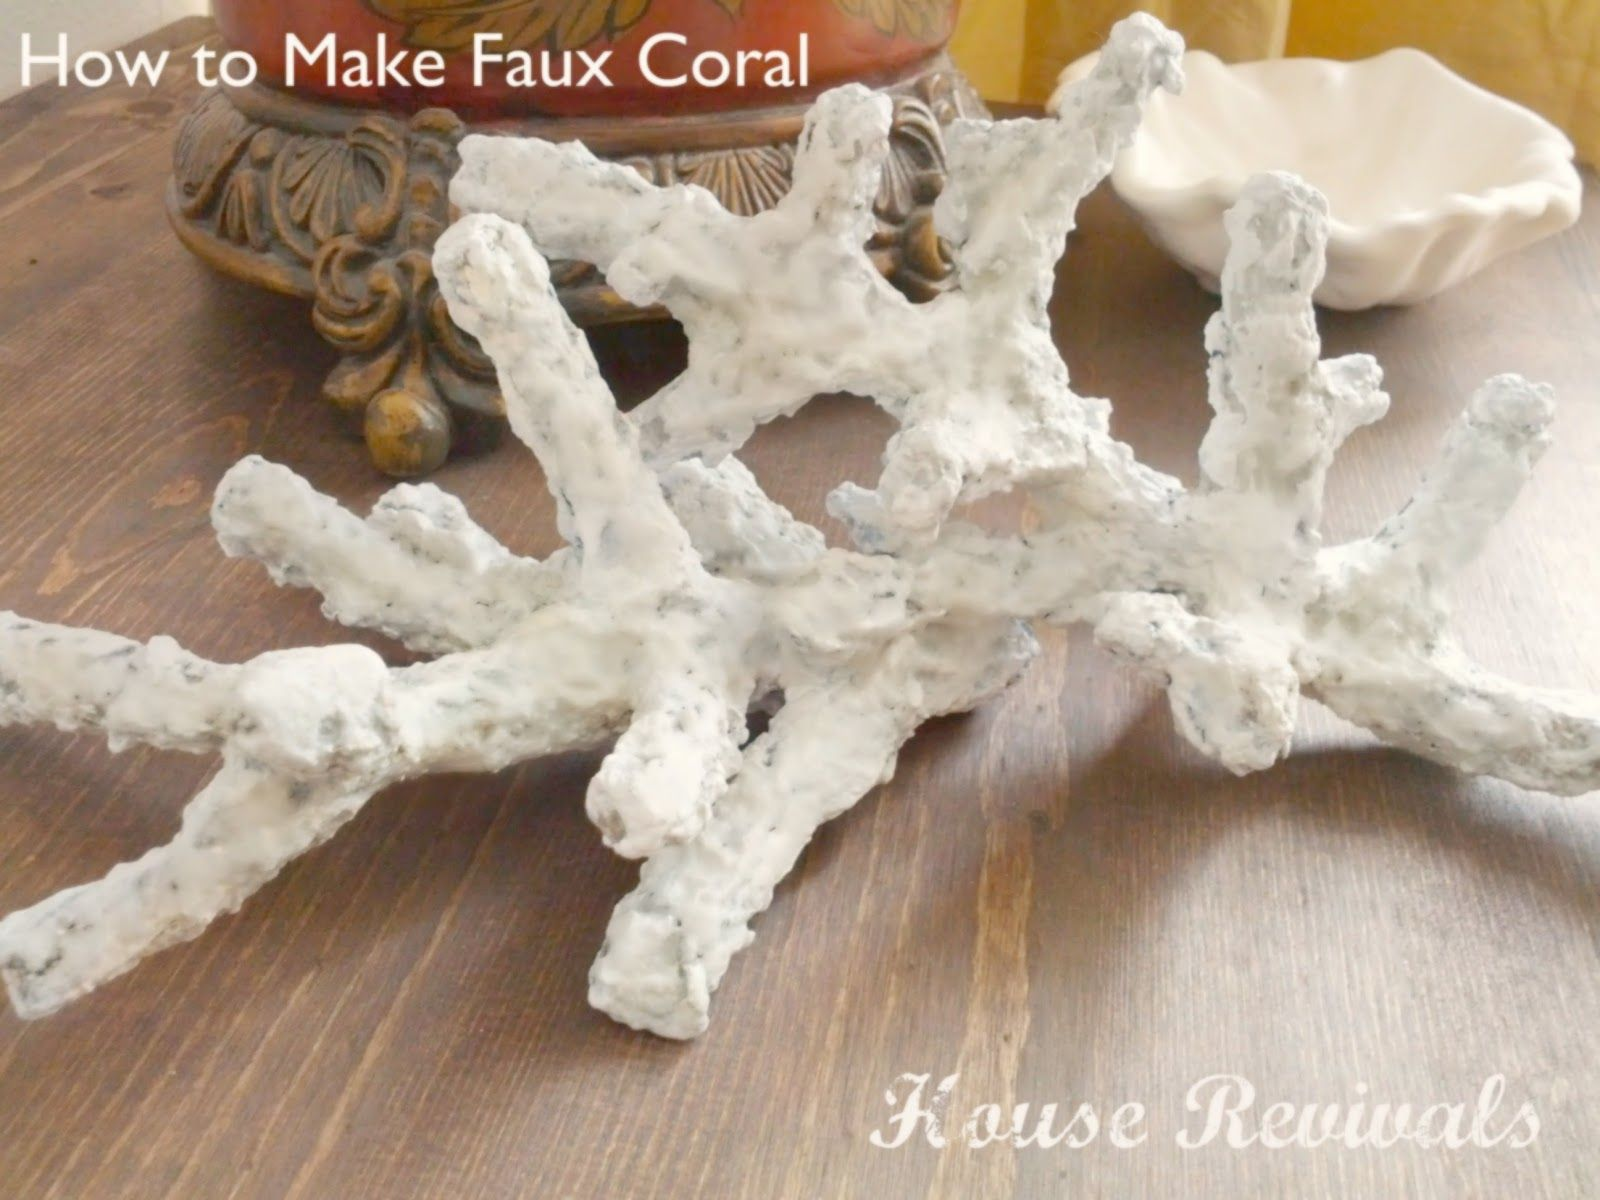 House revivals how to make faux coral that includes her for Paper mache pulp